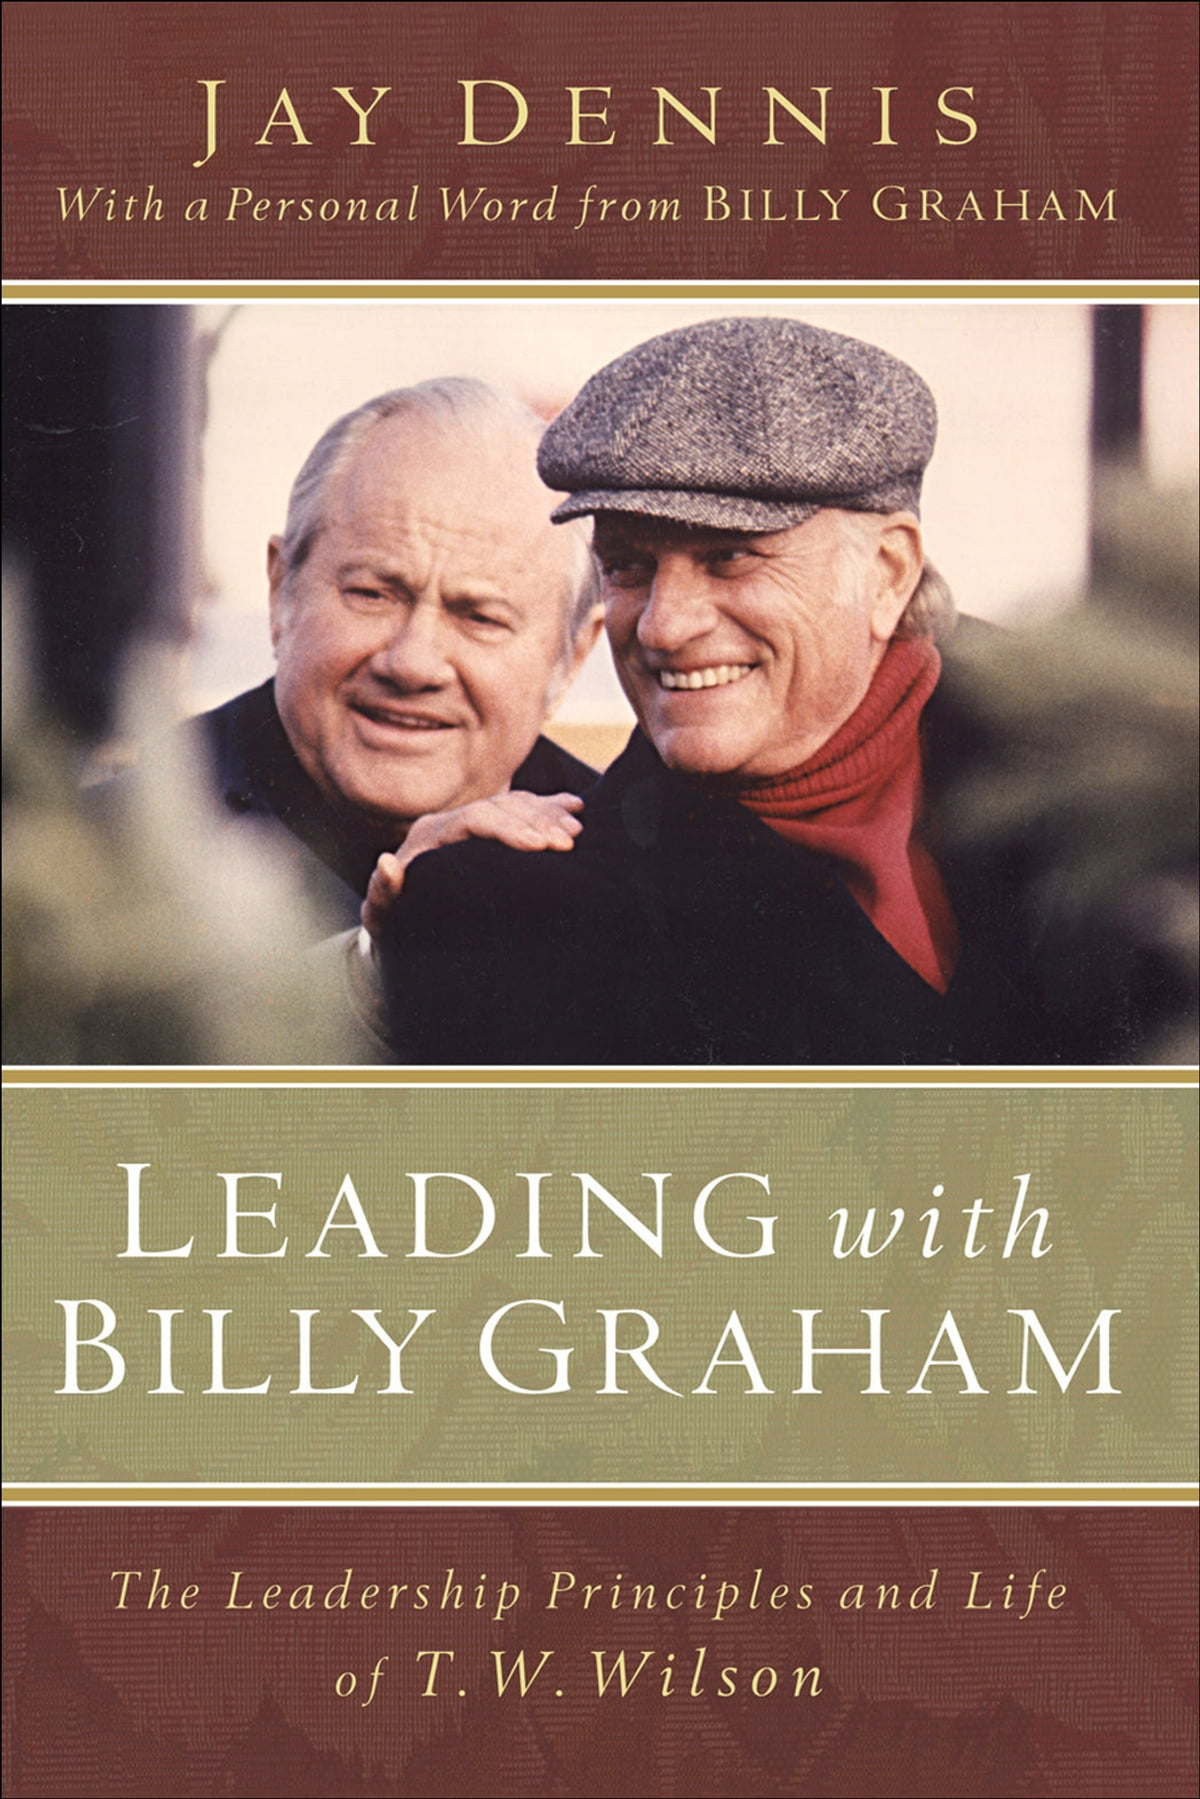 Leading with Billy Graham 電子書,分類依據Jay Dennis - 9781441243188 | Rakuten Kobo